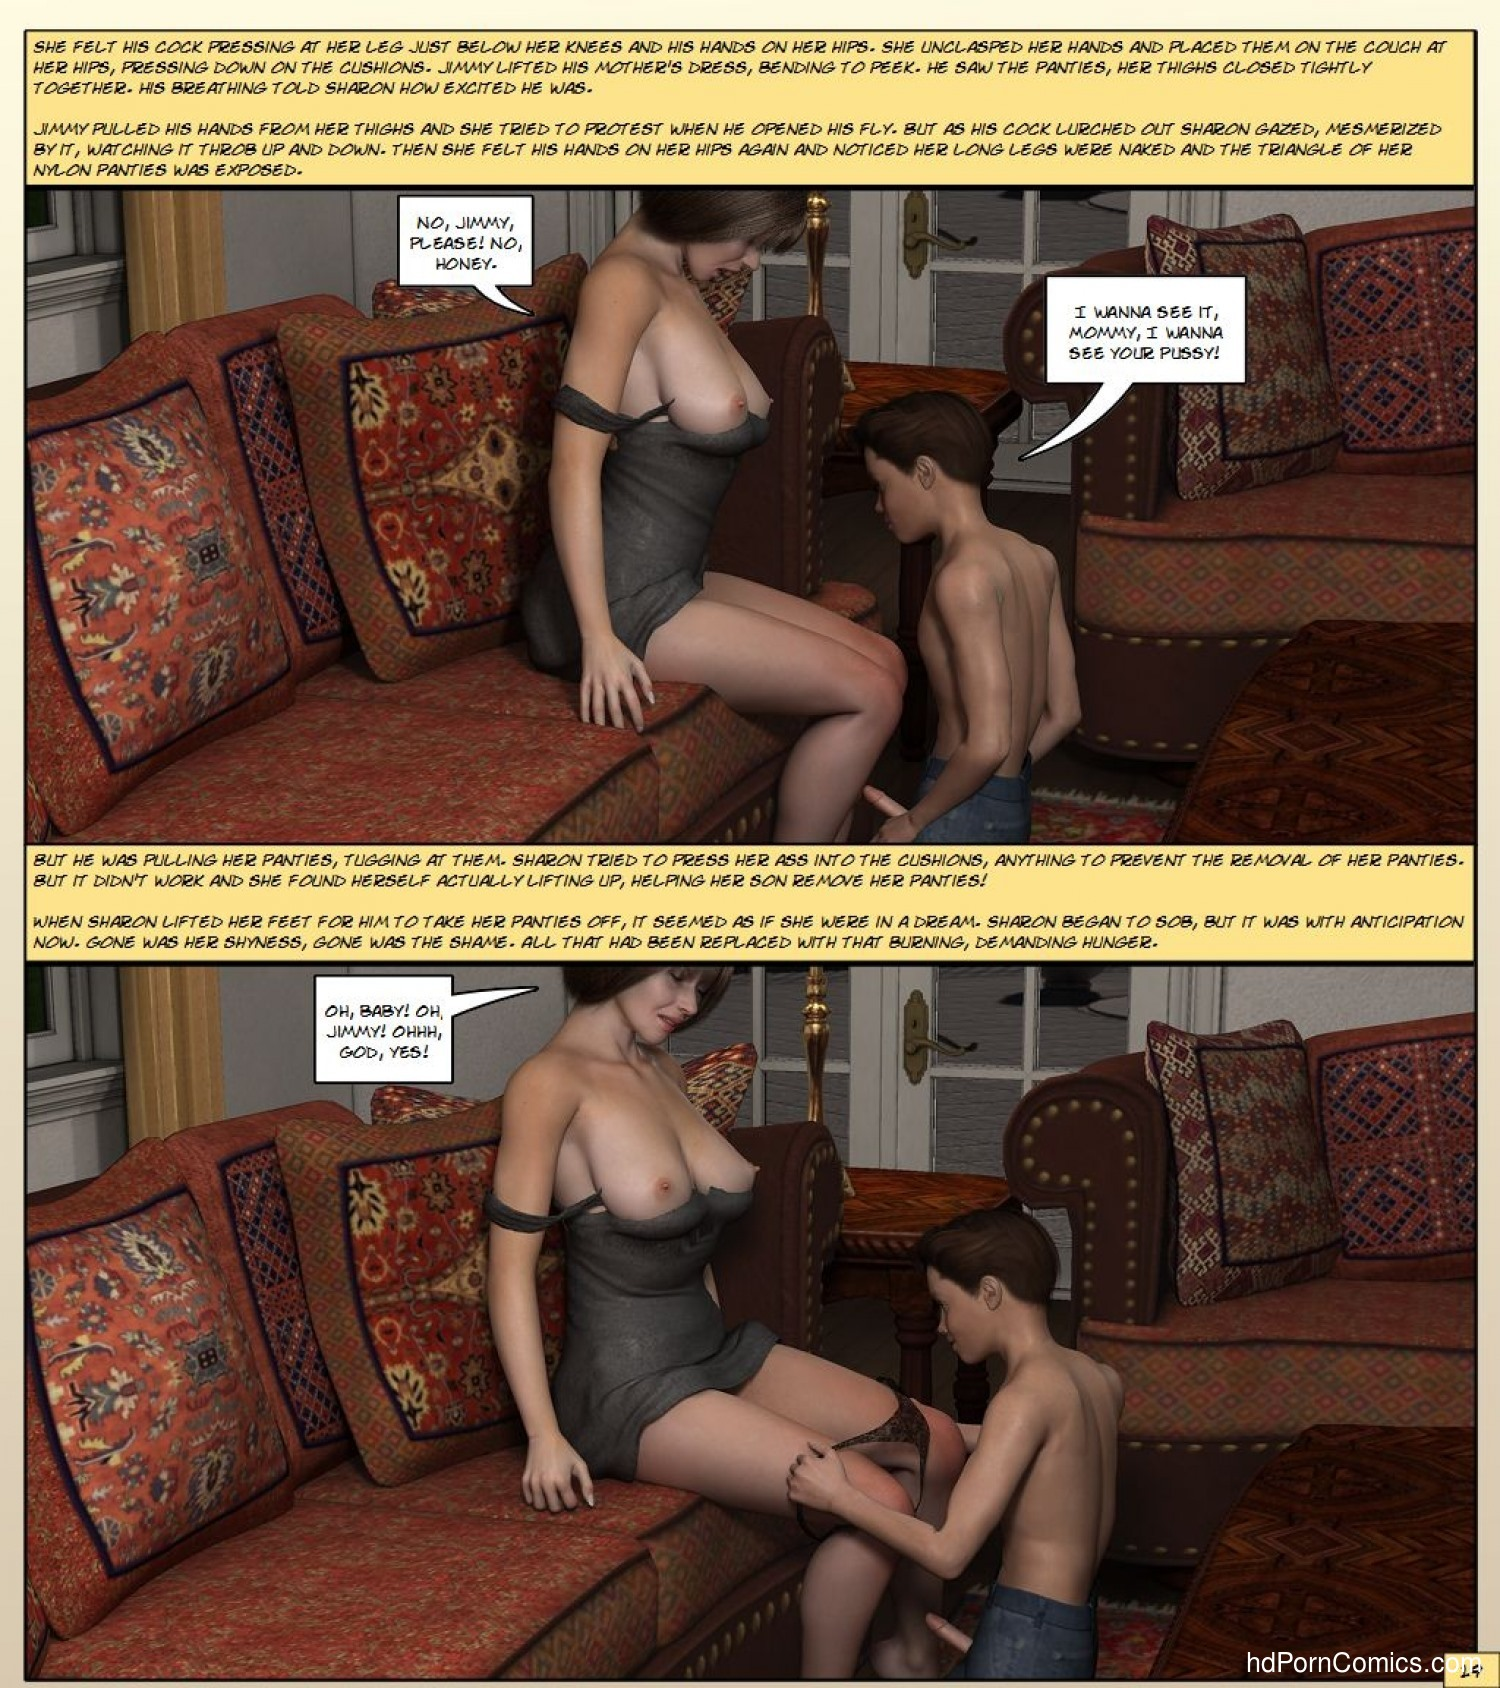 Kathy Andrews – Mother Gets Horny20 free sex comic